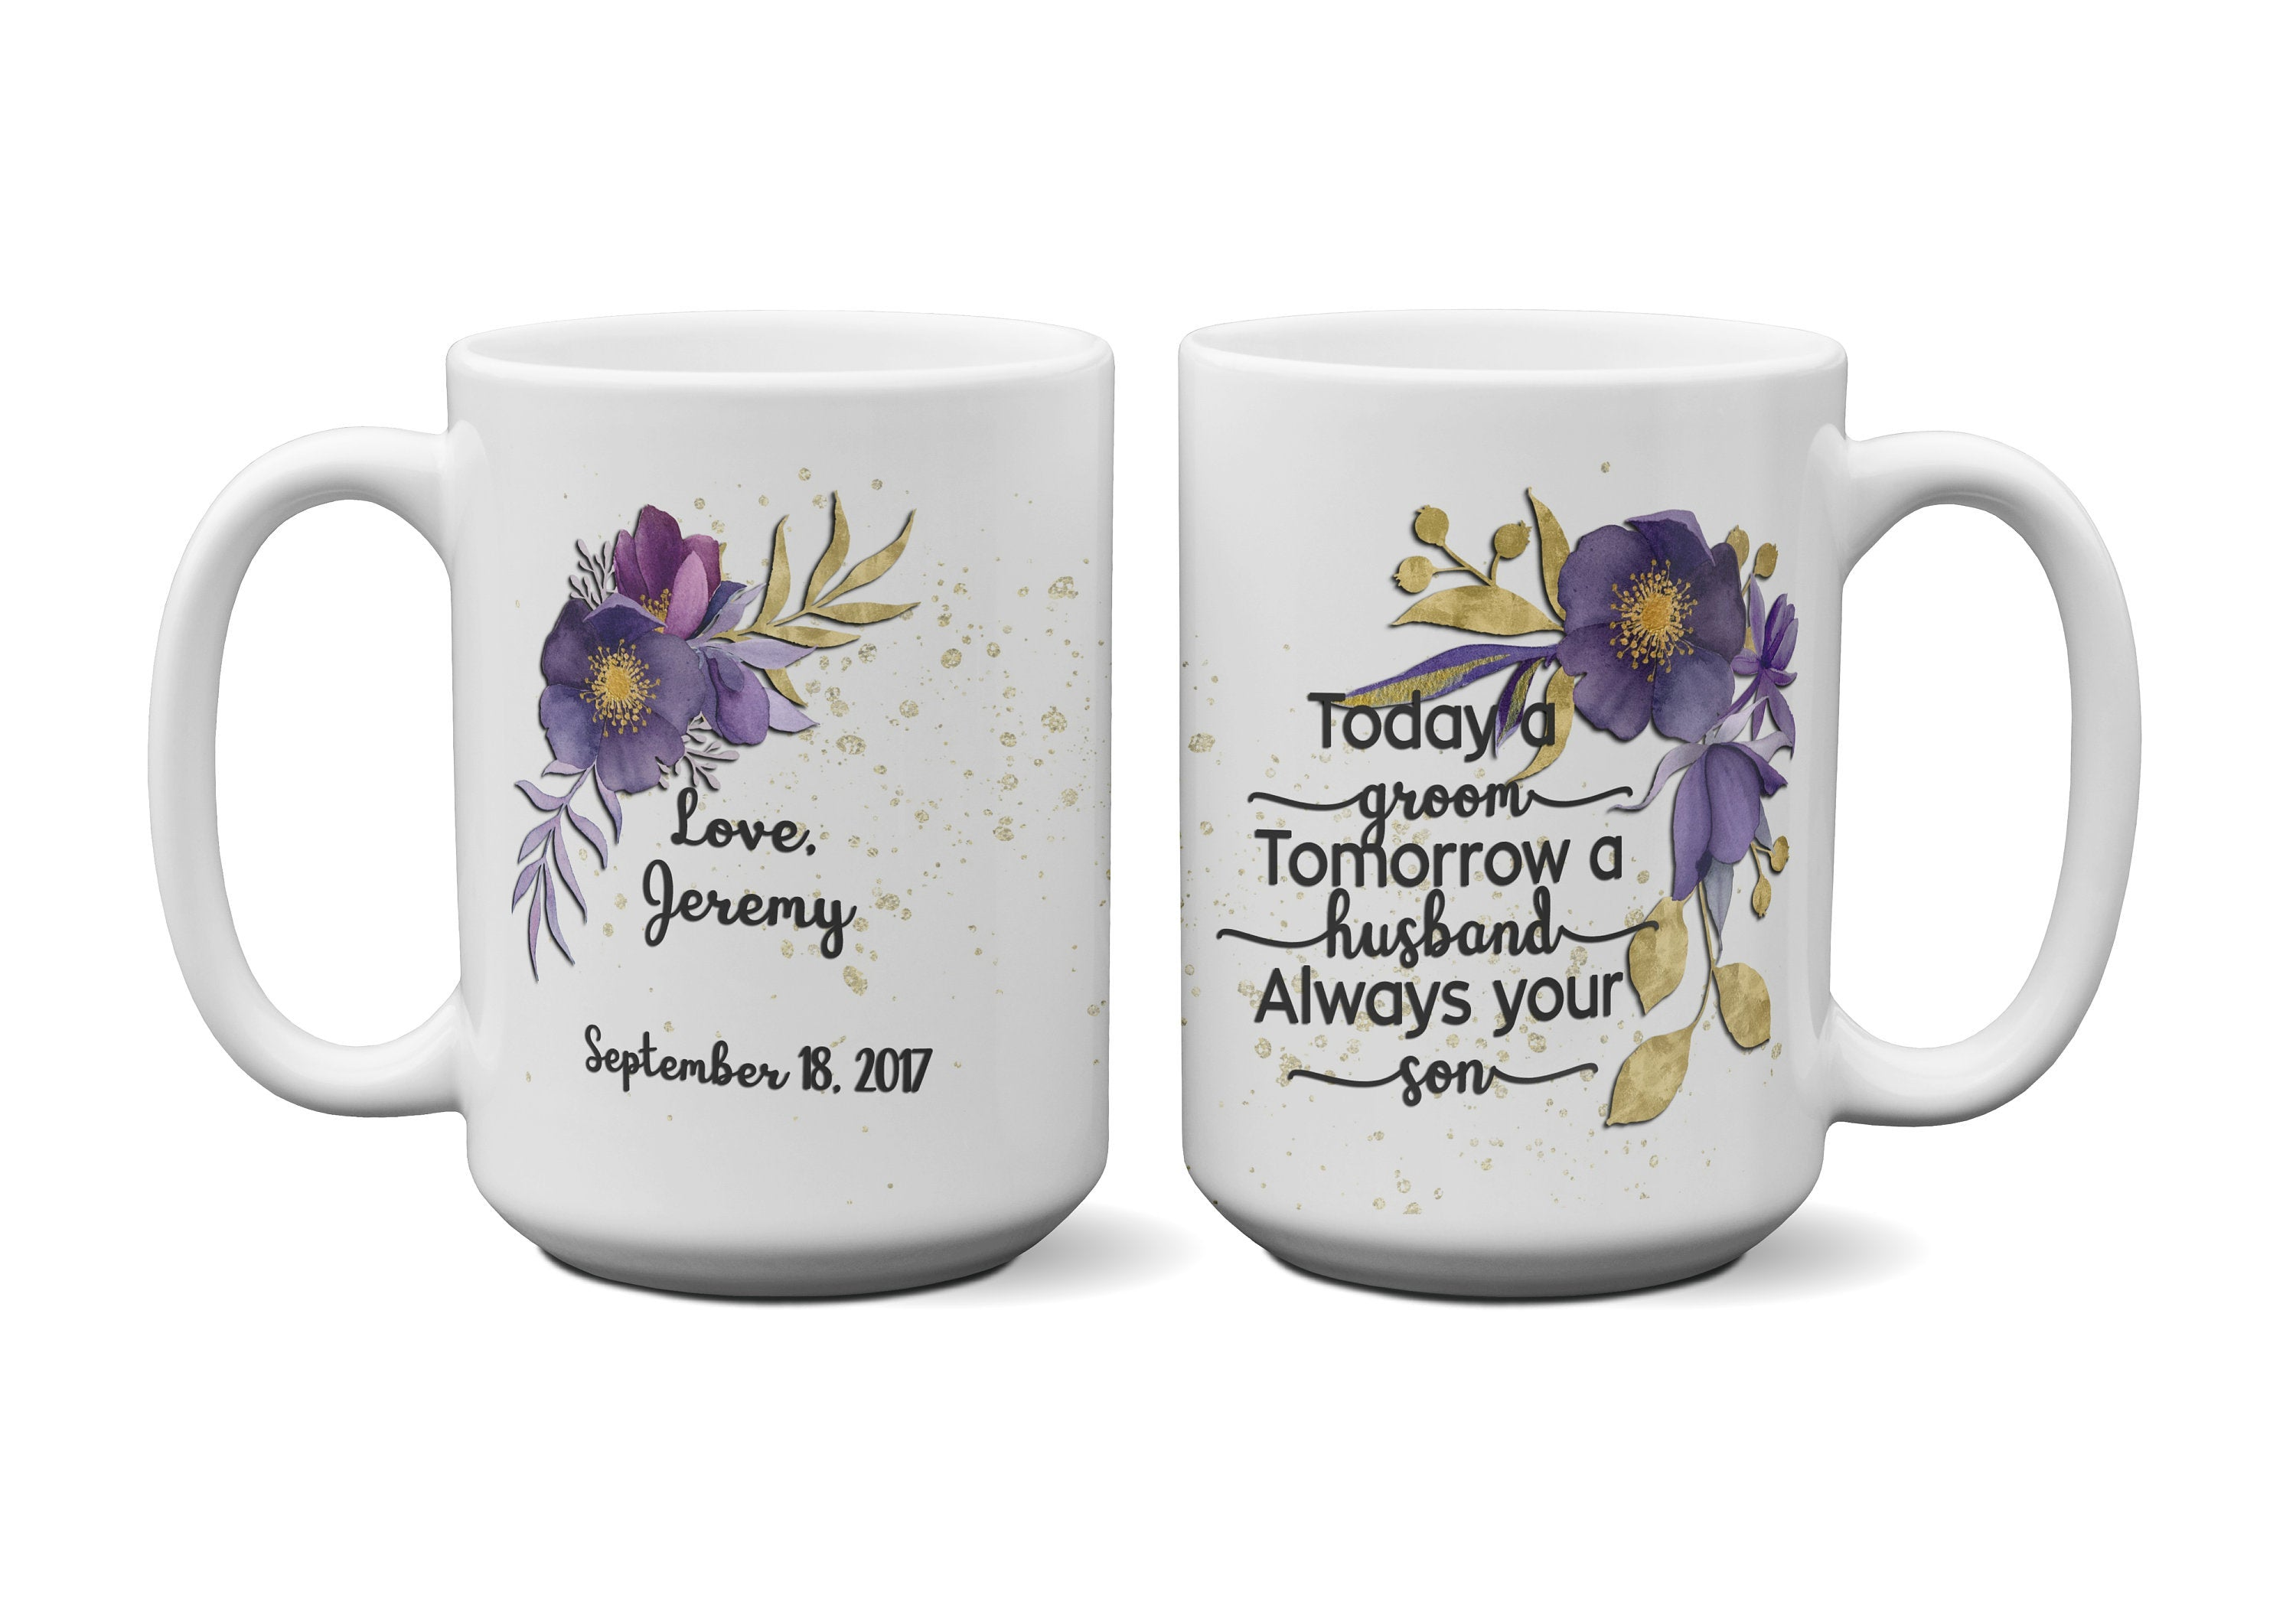 Mother Father Coffee Mug Gift Today a Groom - Always your Son 15 oz coffee mug | Parent Thank you Wedding Gift | Custom Wedding Coffee Mug